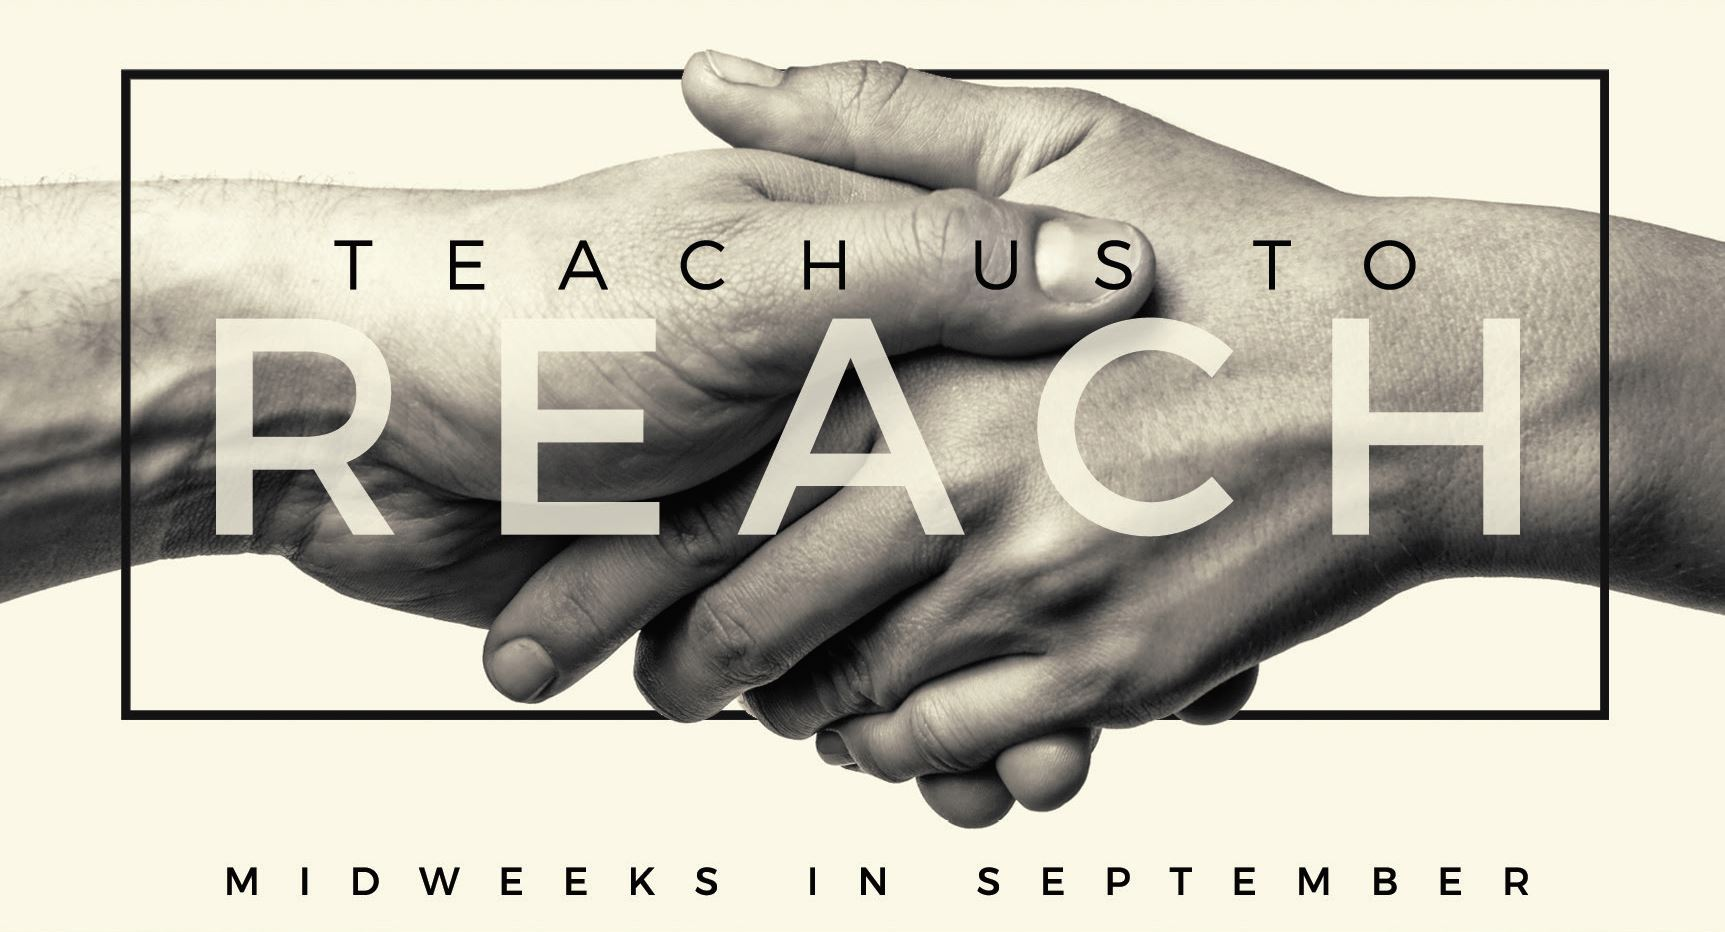 Teach us to Reach | Midweeks in September